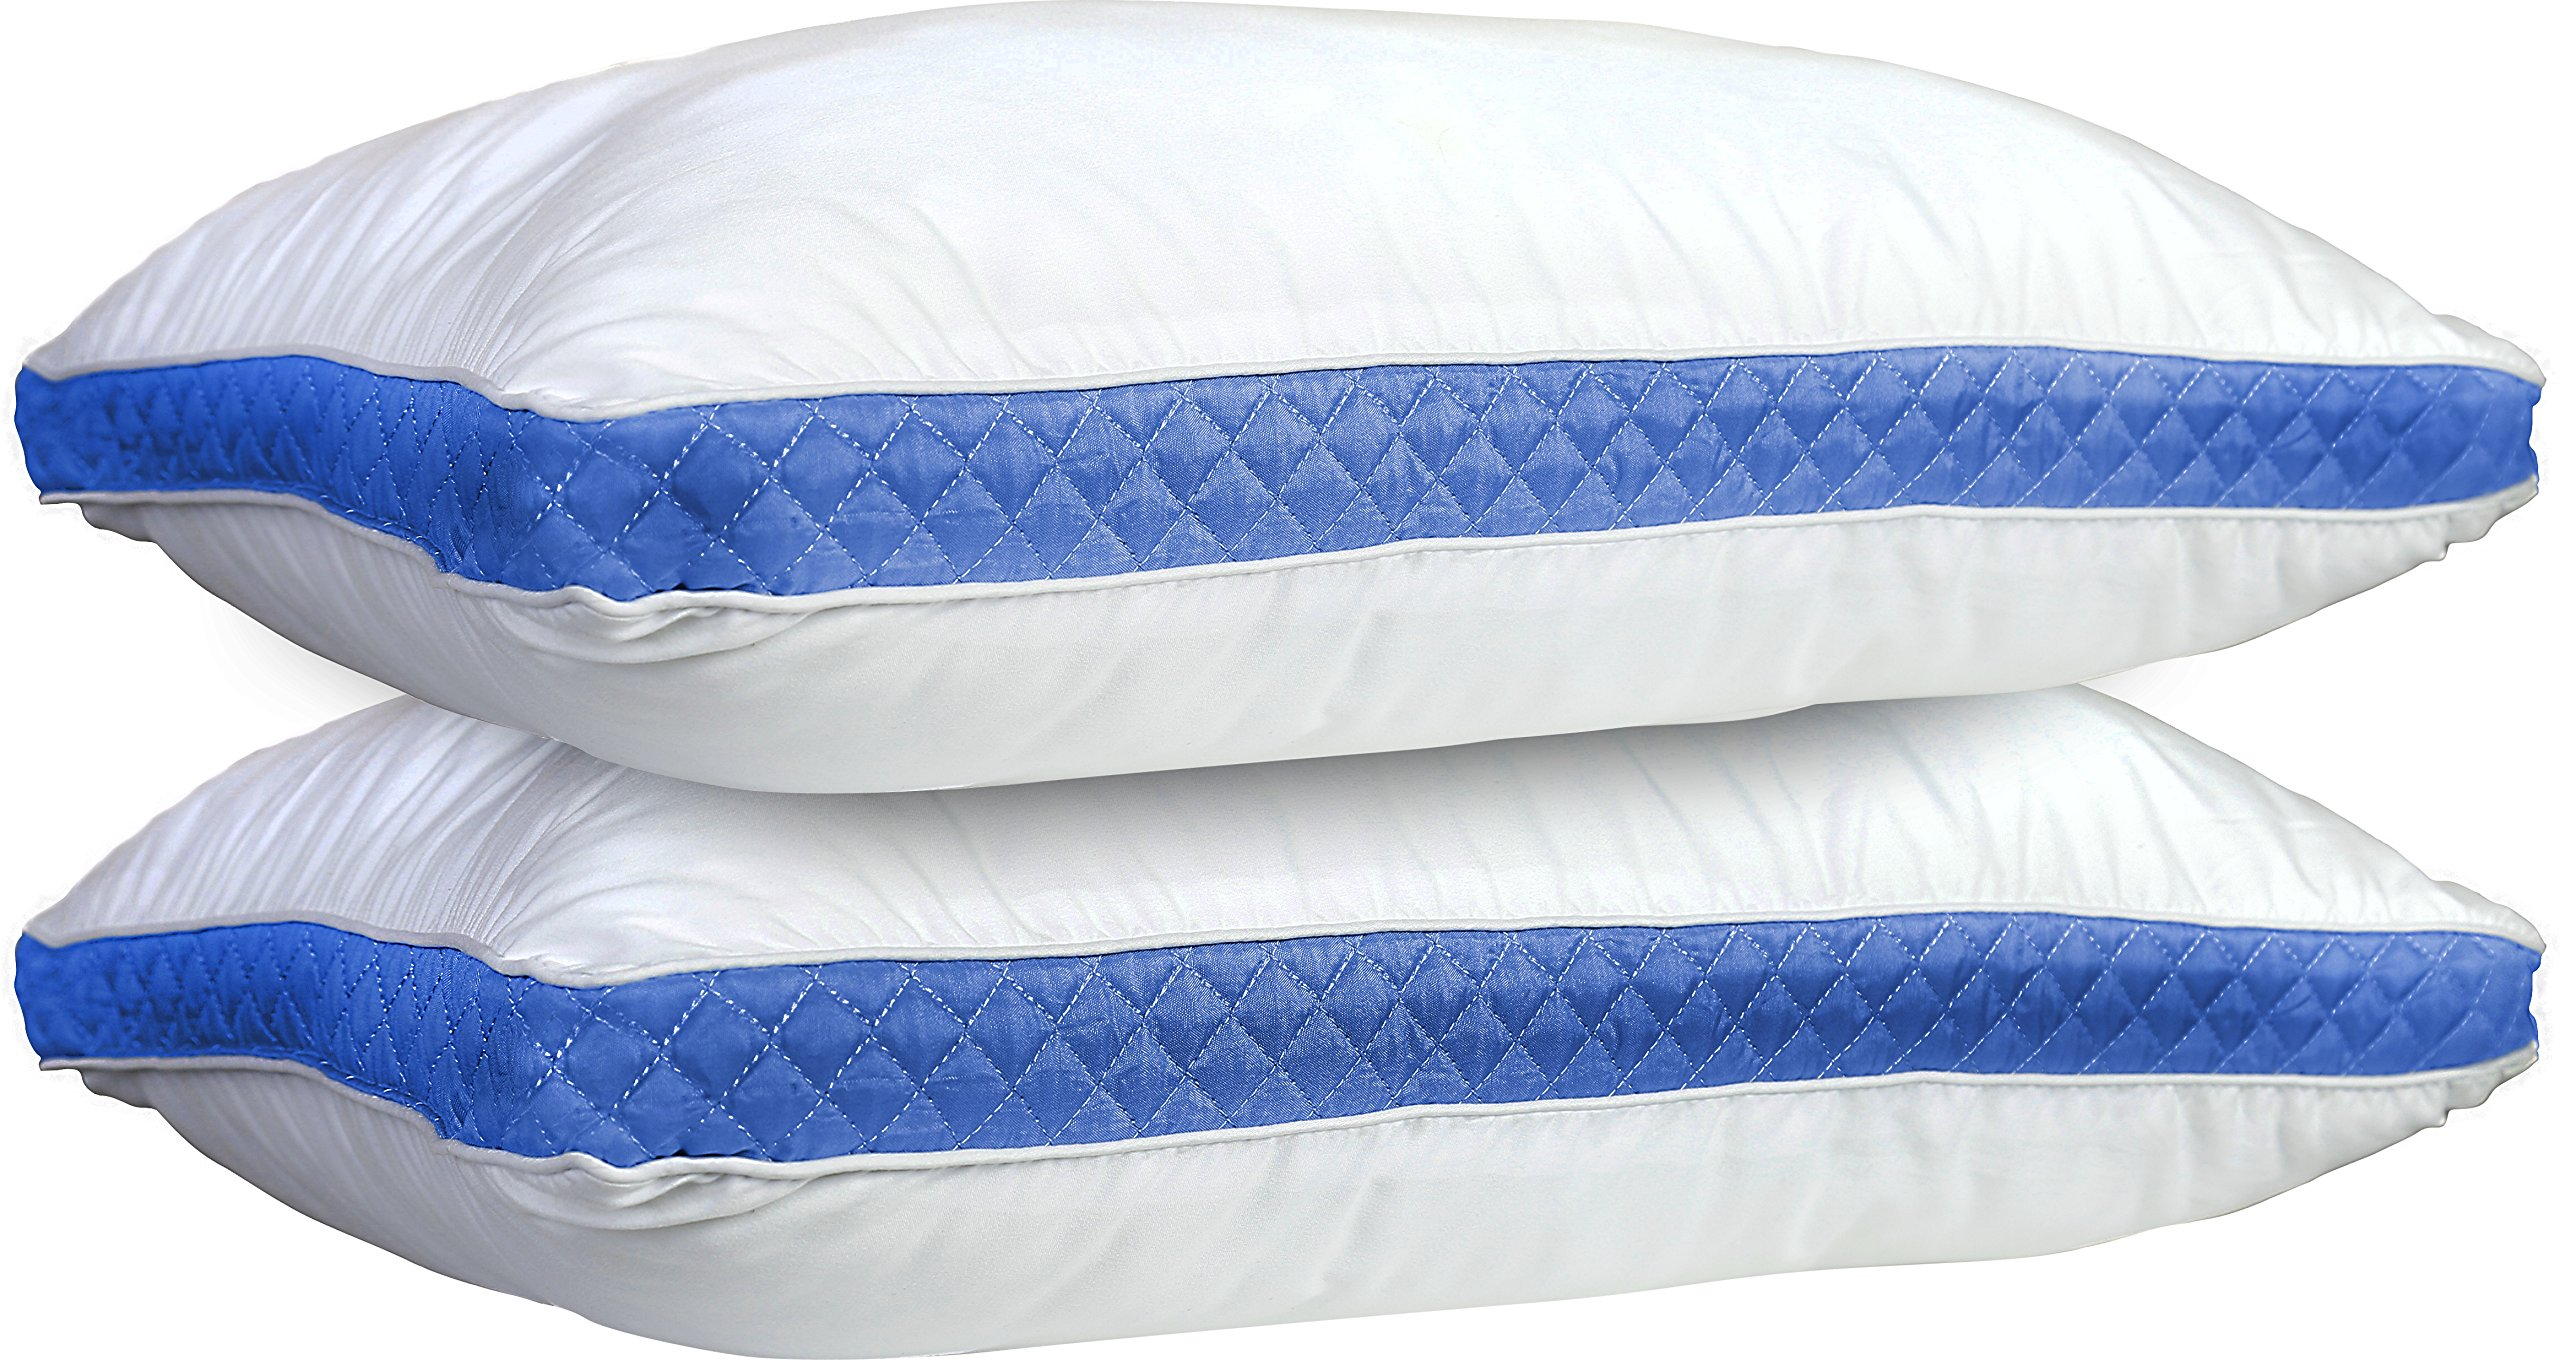 Lux Decor Collection Gusseted Quilted Bed Pillow - Set of 2 Premium Quality Bed Pillows for Side and Back Sleepers (King, Blue Gussets)